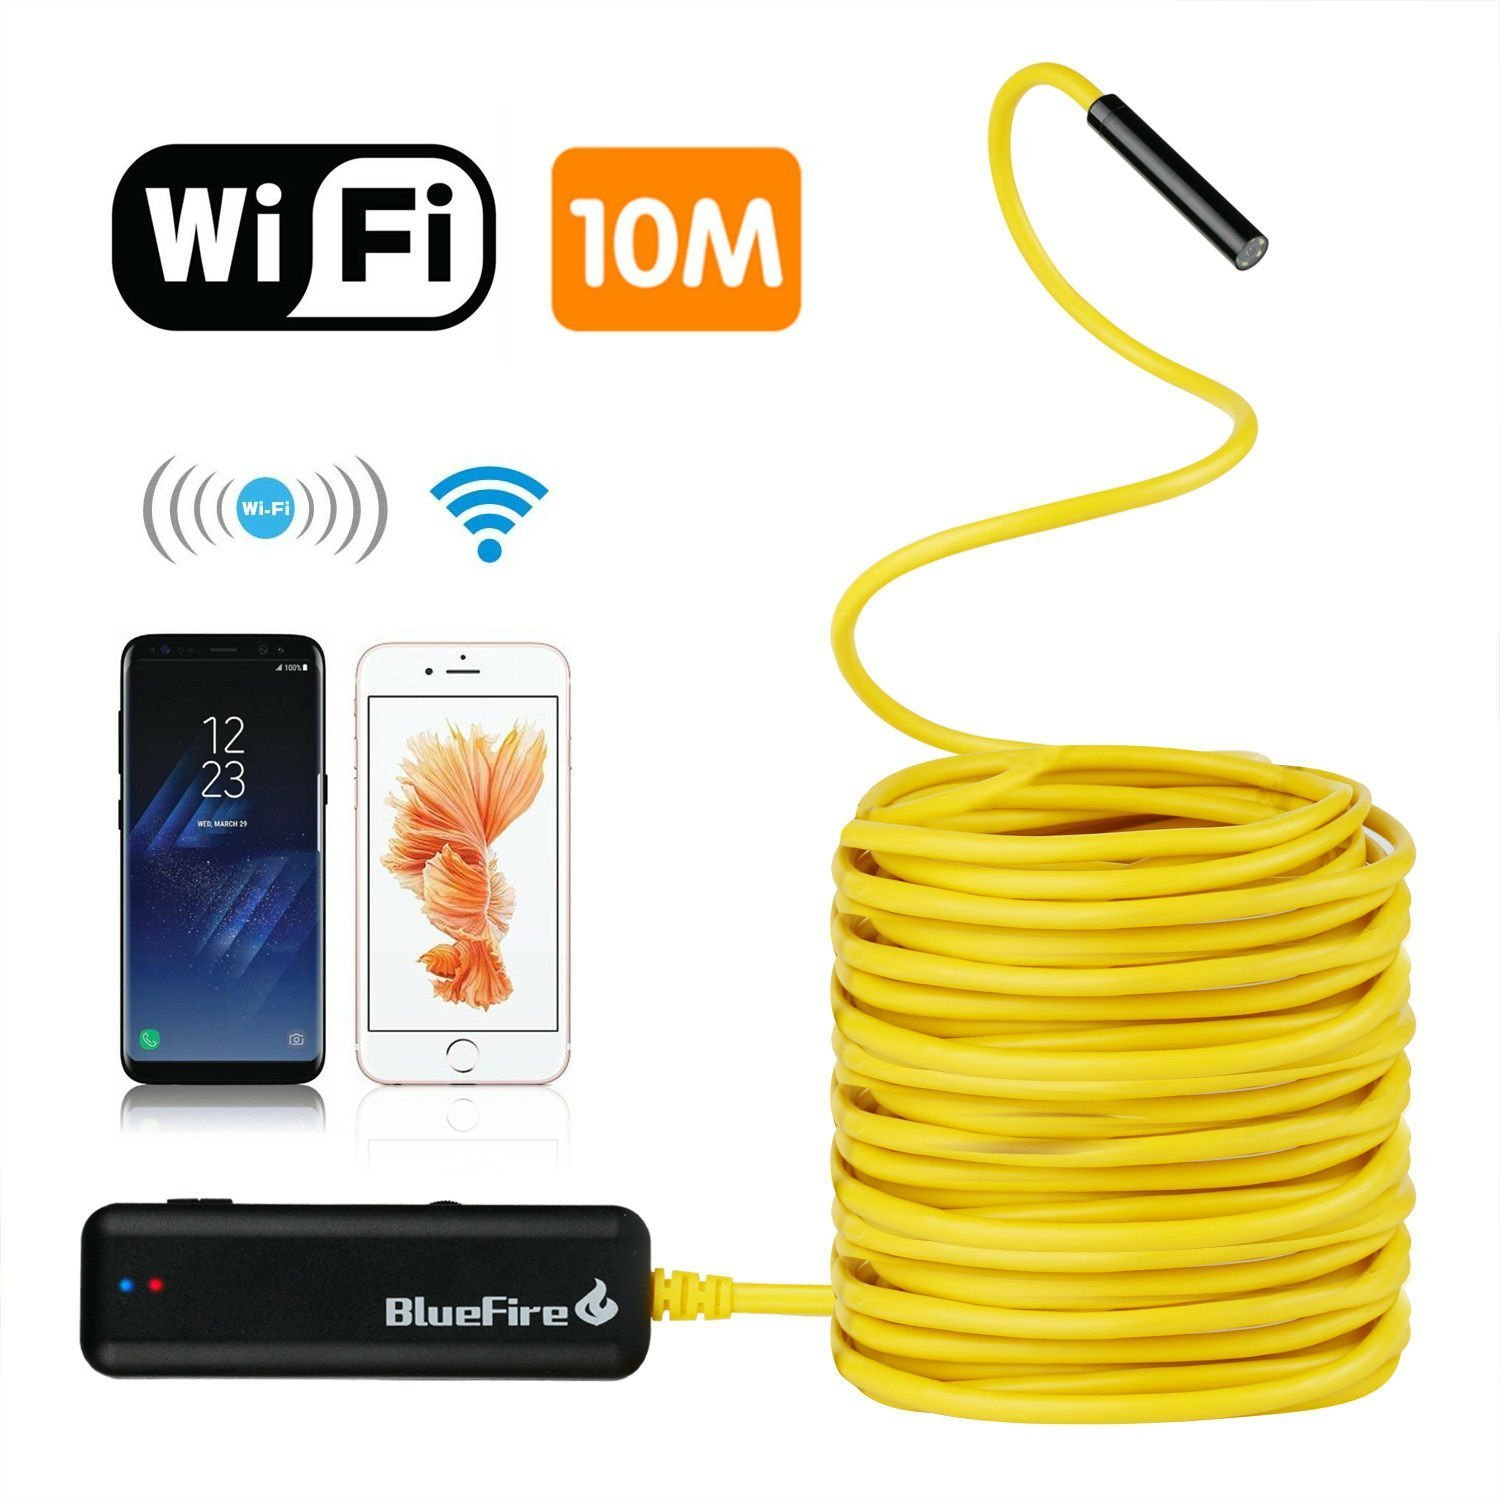 BlueFire Semi-rigid Flexible Wireless Endoscope IP67 Waterproof WiFi Borescope 2 MP HD Resolutions Inspection Camera Snake Camera for Android and iOS Smartphone, iPhone, Samsung, iPad, Tablet (33FT)